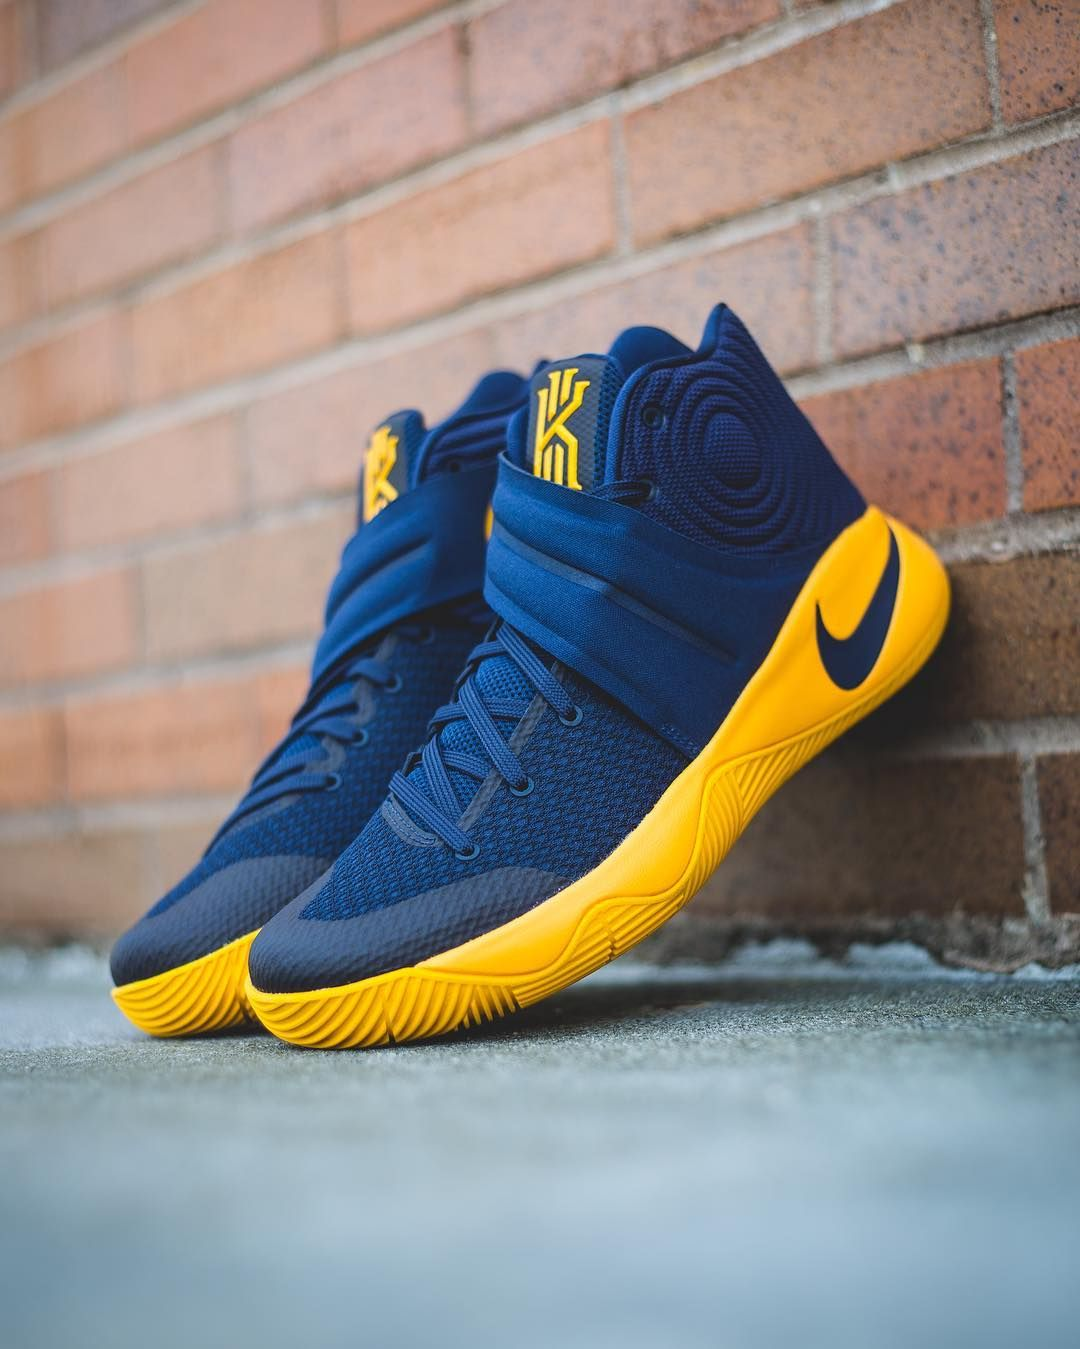 23d1dc6de457 Nike KYRIE 2 II CAVS Mens Size 9.5 Basketball Playoff Shoes Navy Gold  819583-447